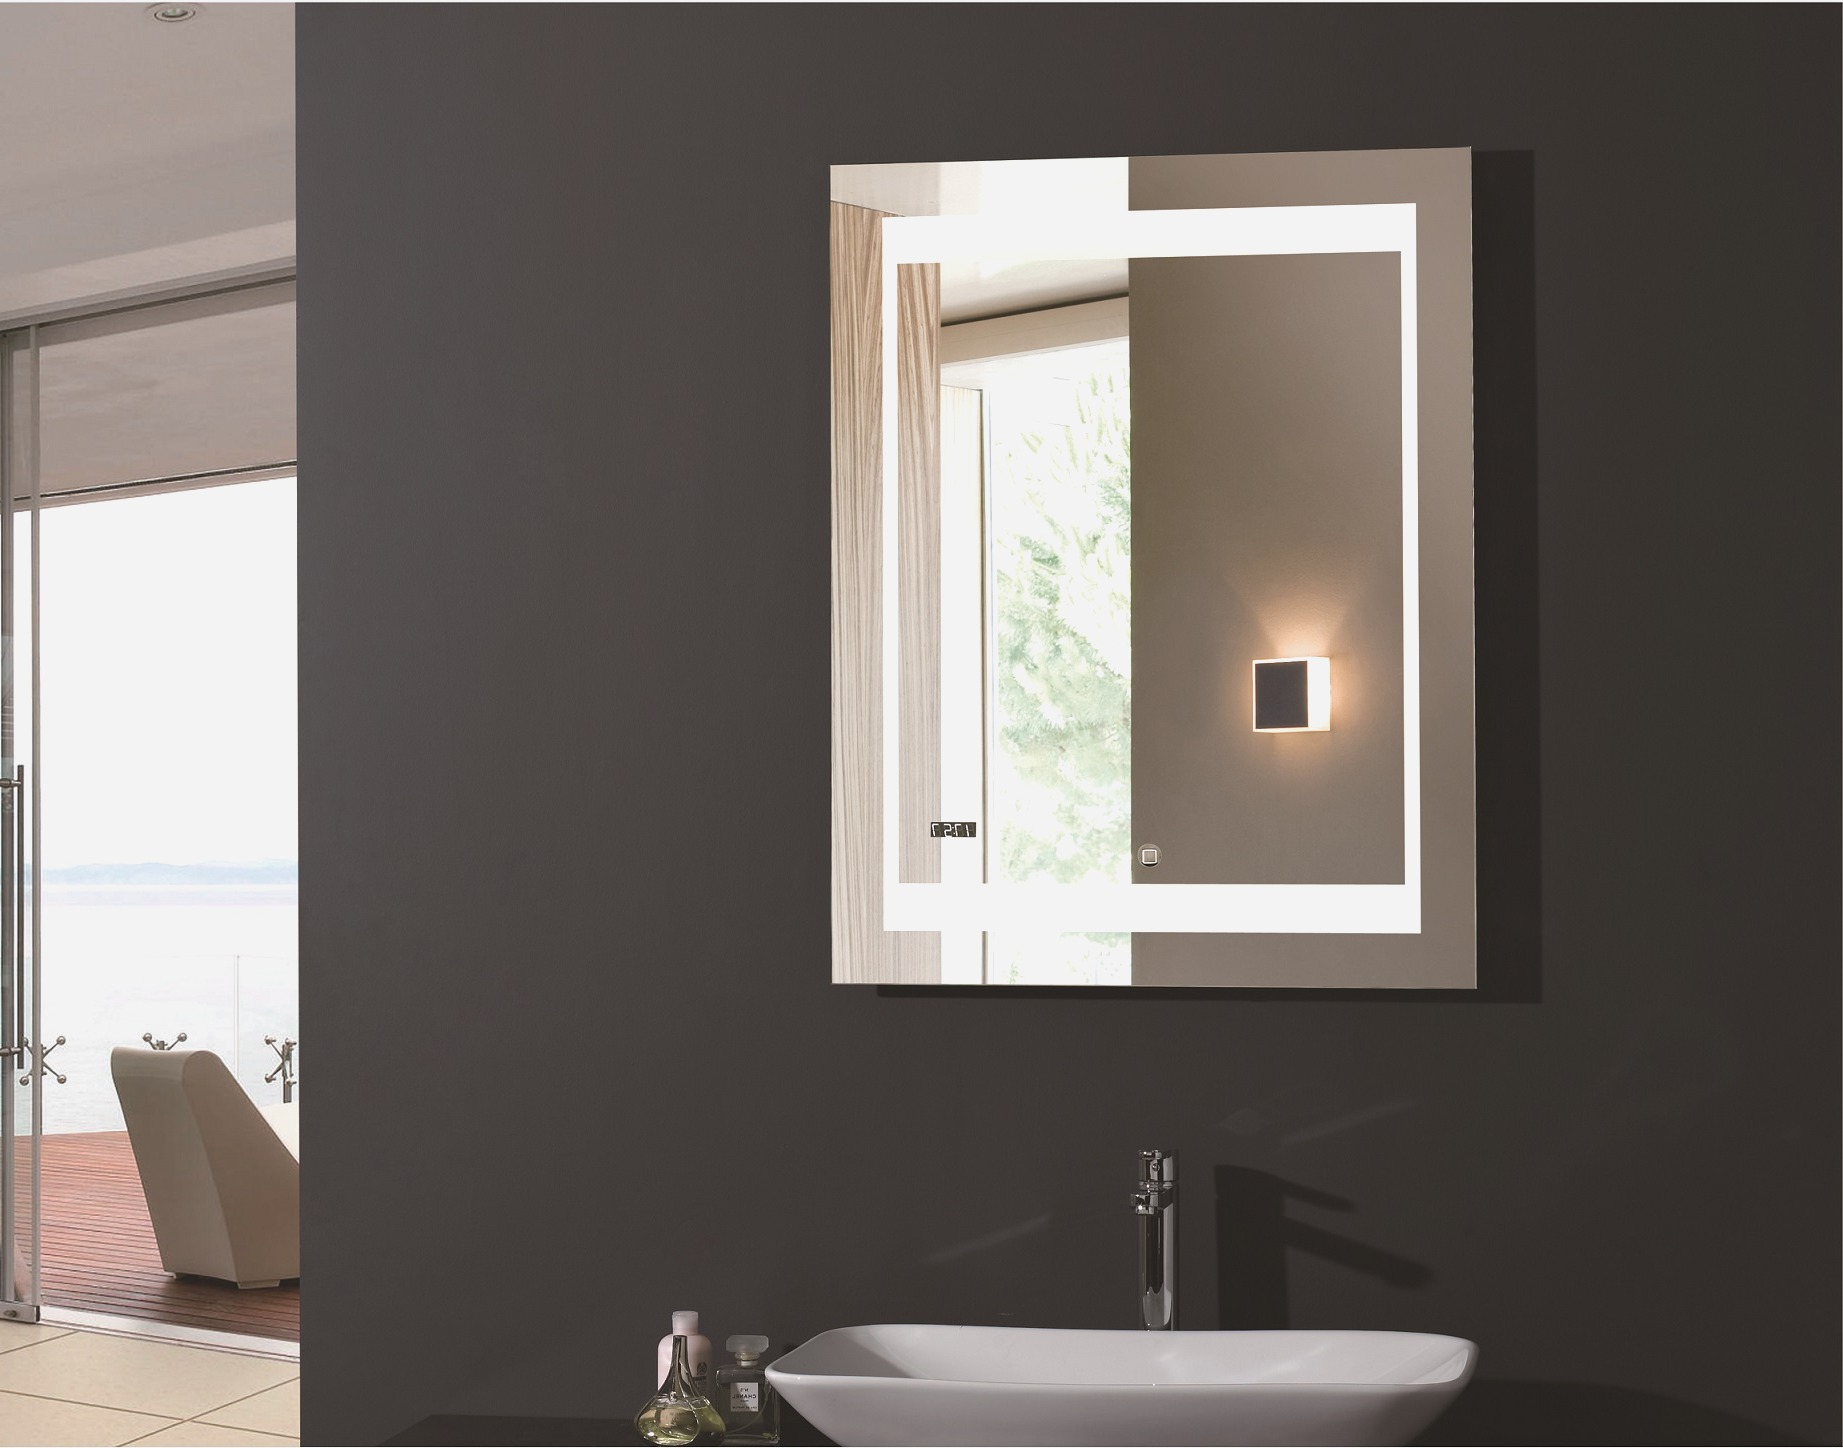 Picture of: Vanity Mirror With Light Bulbs Around It Nuhsyrco intended for proportions 1843 X 1448